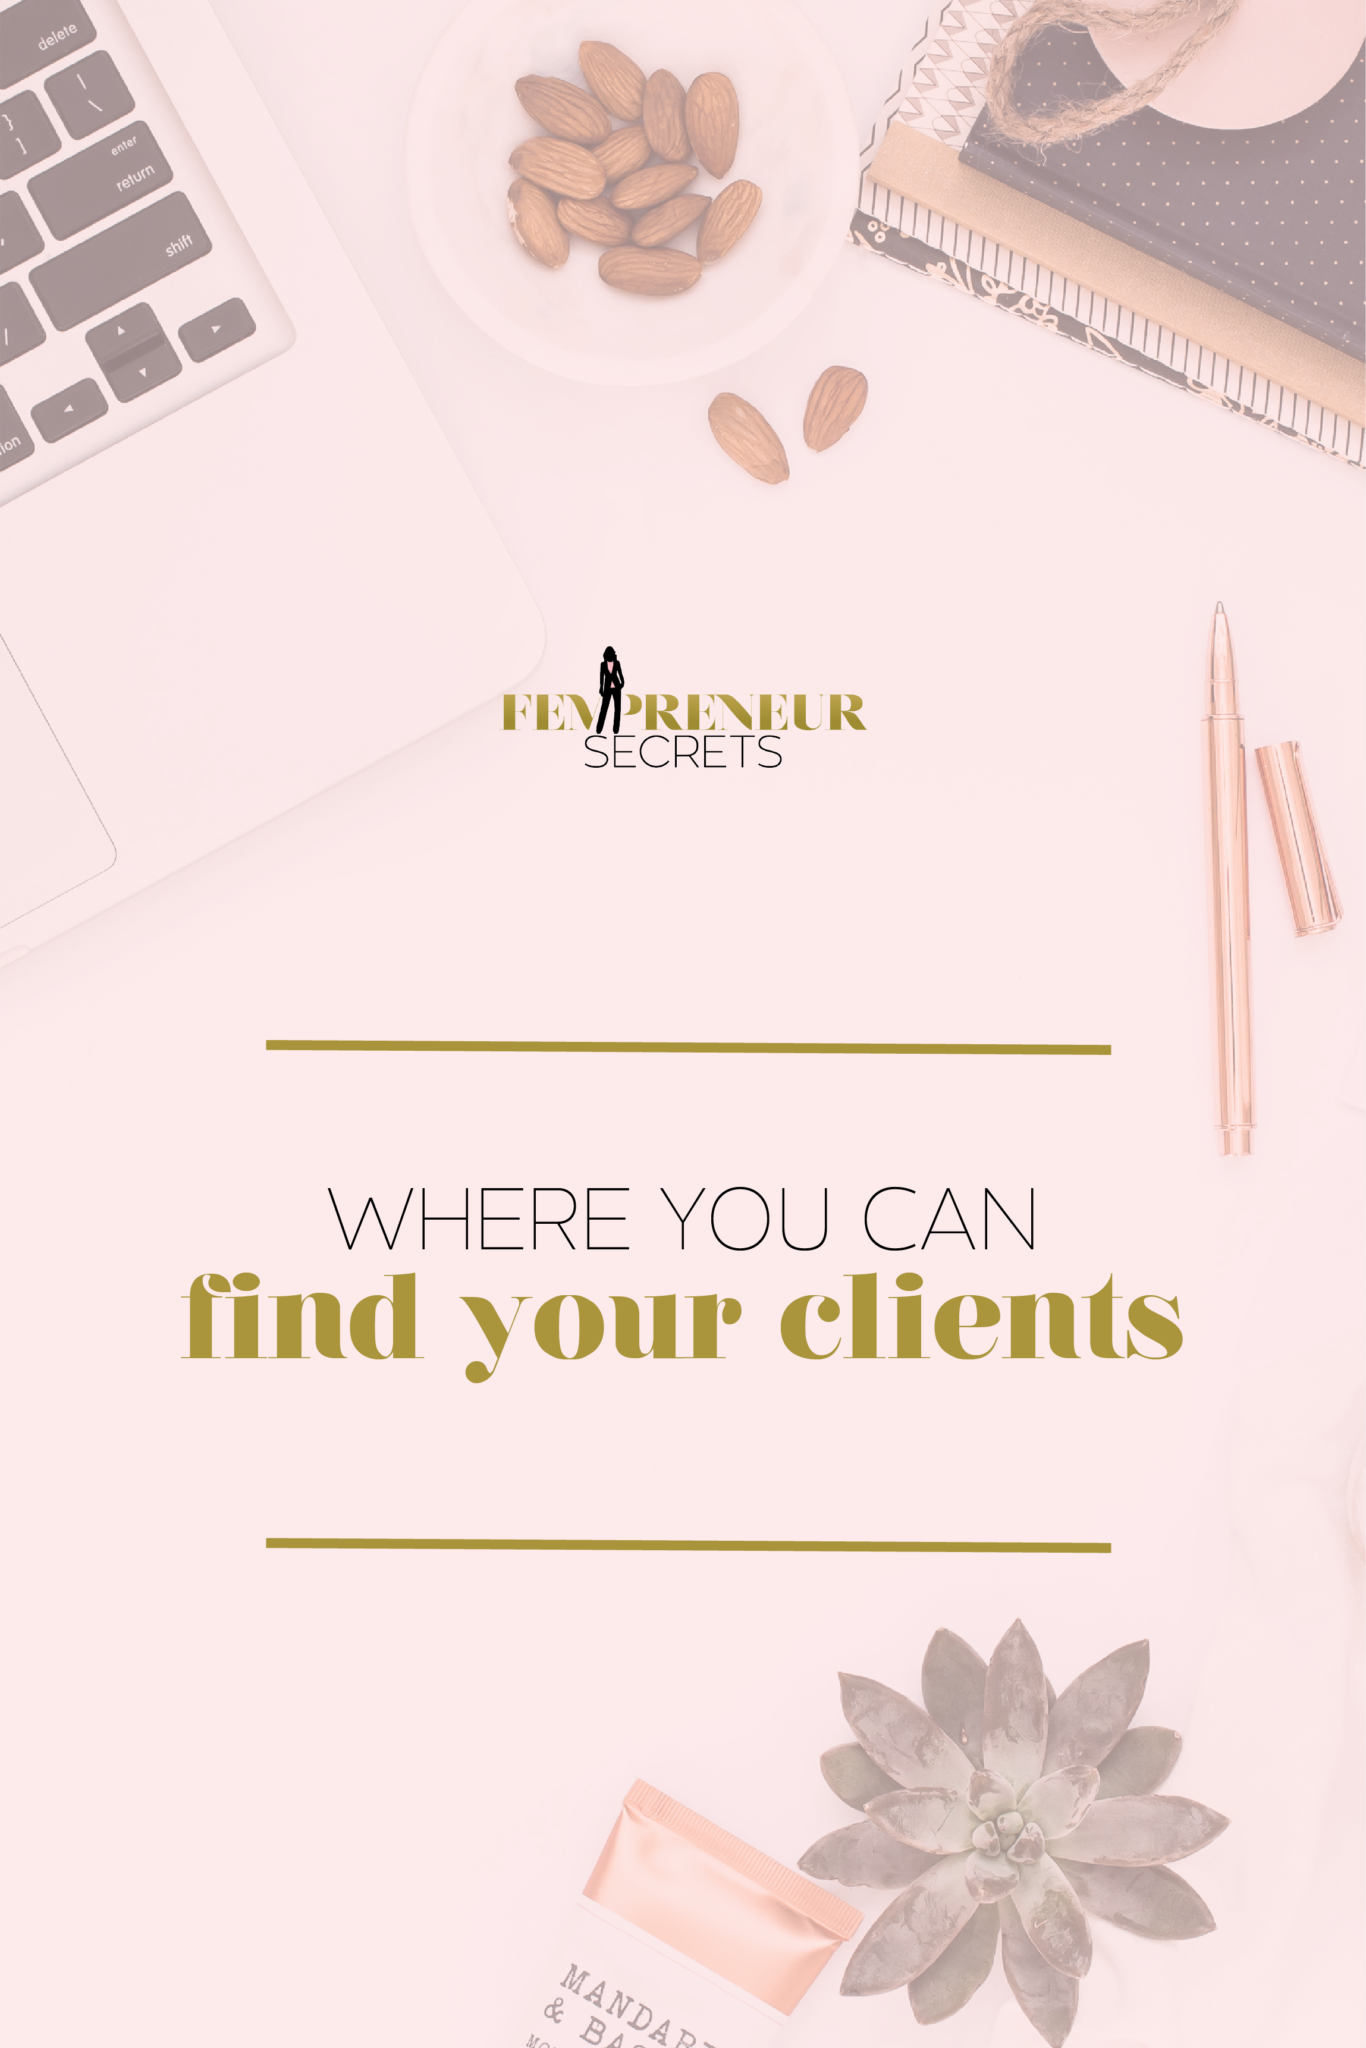 015-Where-You-Can-Find-Your-Clients_Pinterest-2.png